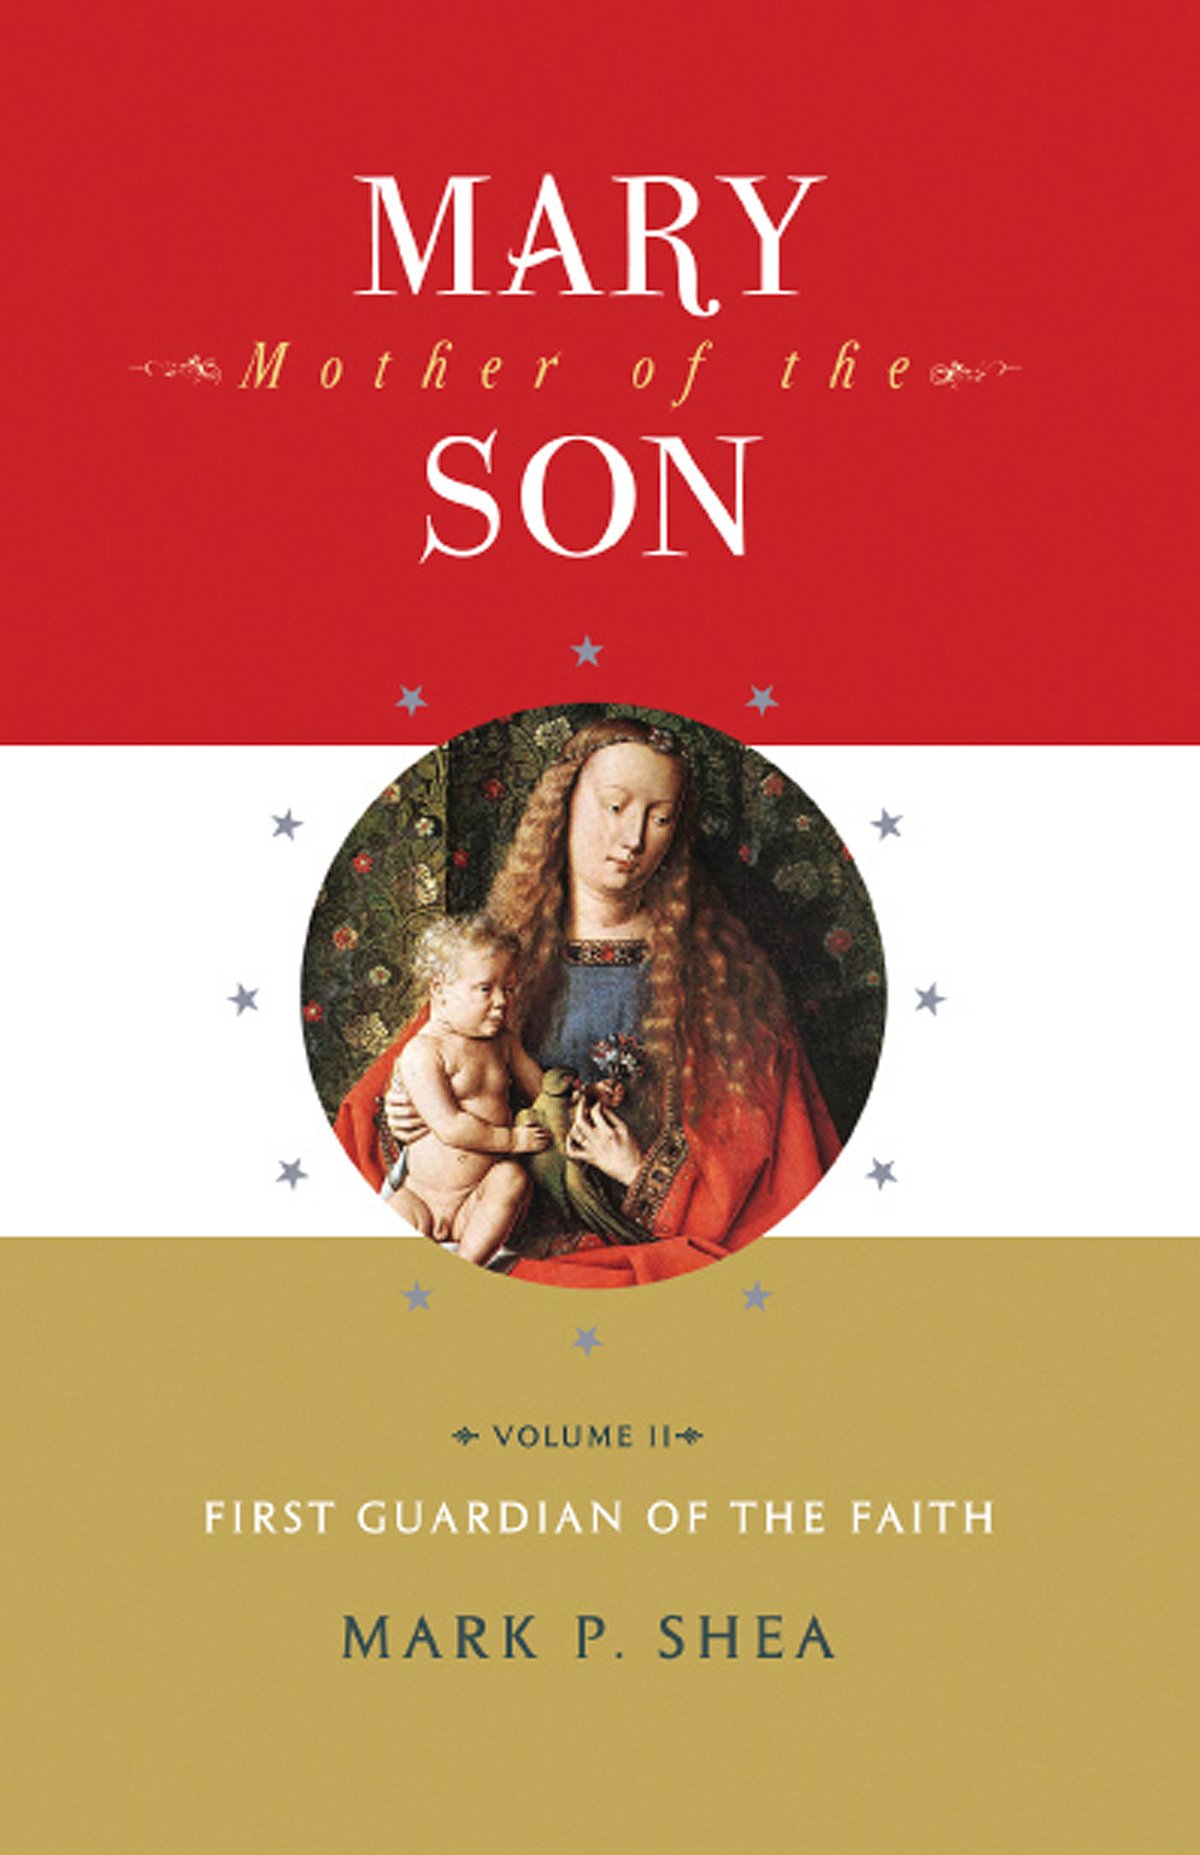 Mary Mother of the Son Vol II pdf